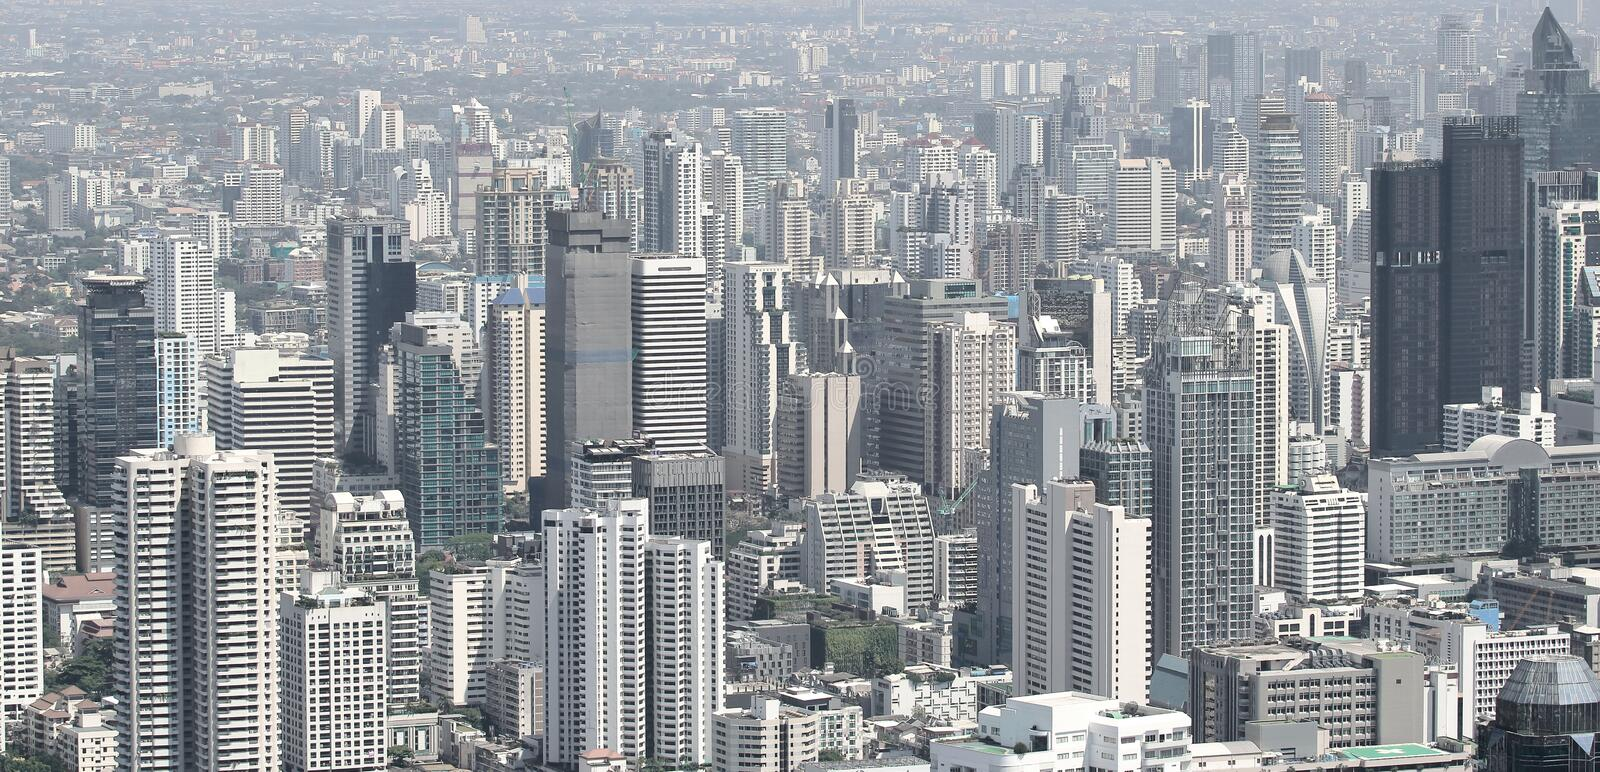 Panoramic view of skyscrapers in Bangkok modern city buildings stock photography